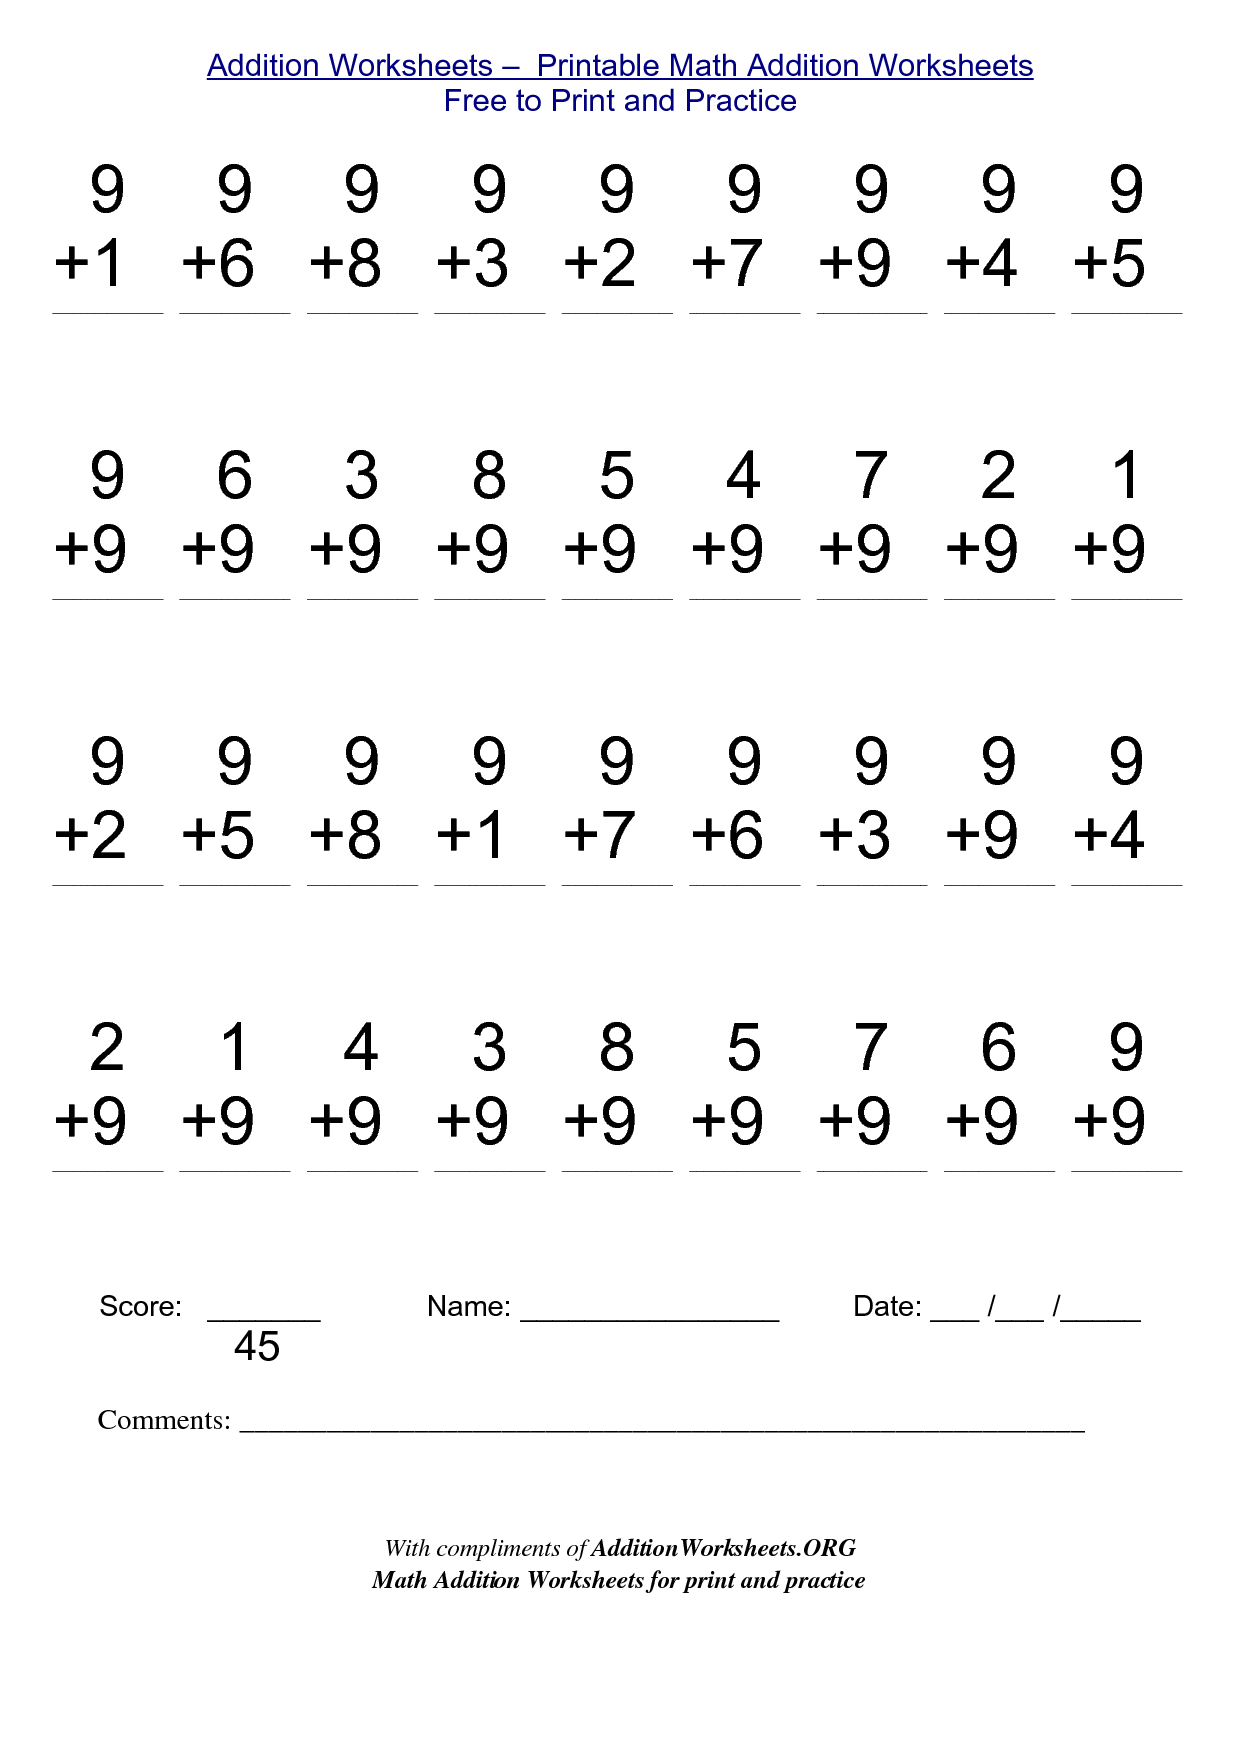 Free Printable Math Worksheets: Image result for kumon math + free printable worksheets   欲しい    ,